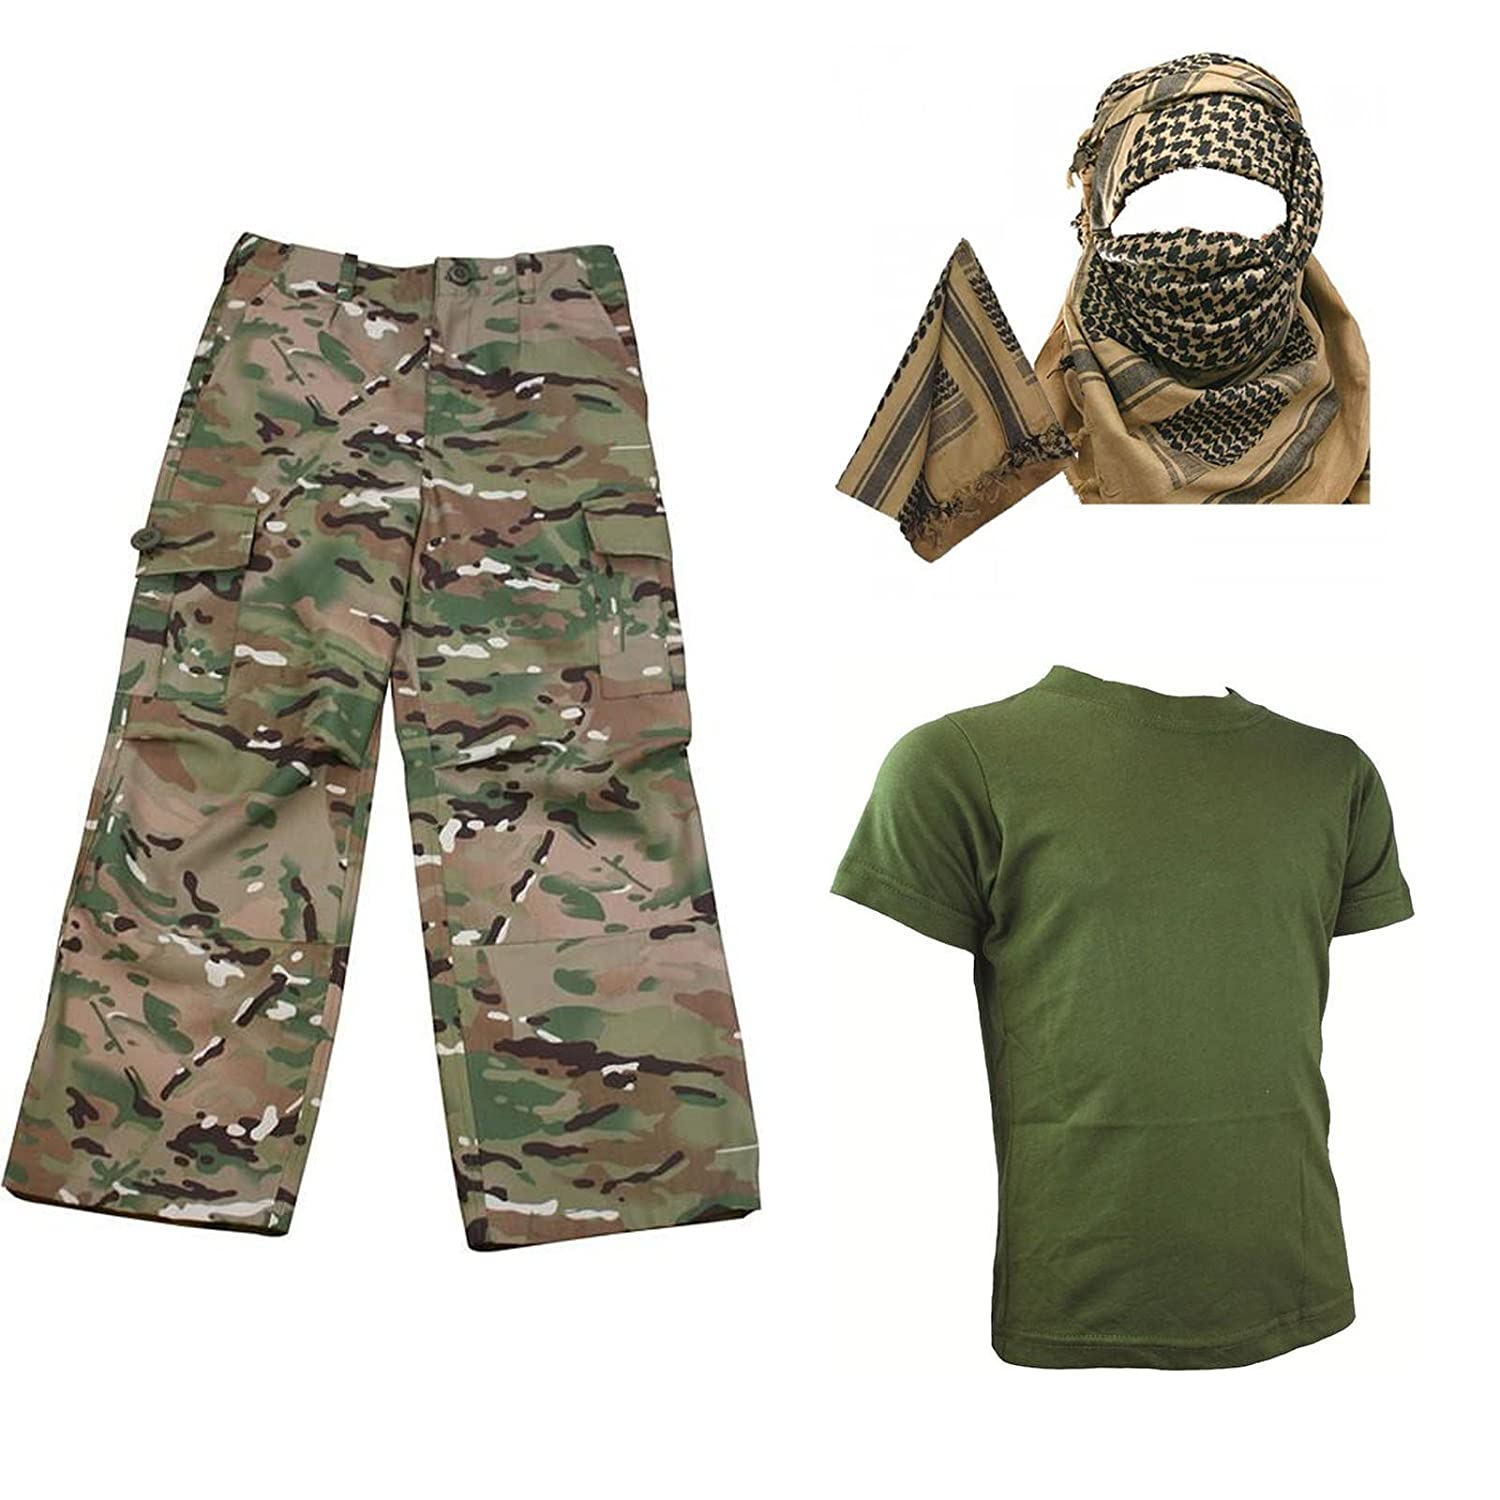 Kids Pack 2 HMTC MTP MultiCam Match - Shirt Pants Shemagh Army Soldier  Dress Up: Amazon.co.uk: Clothing